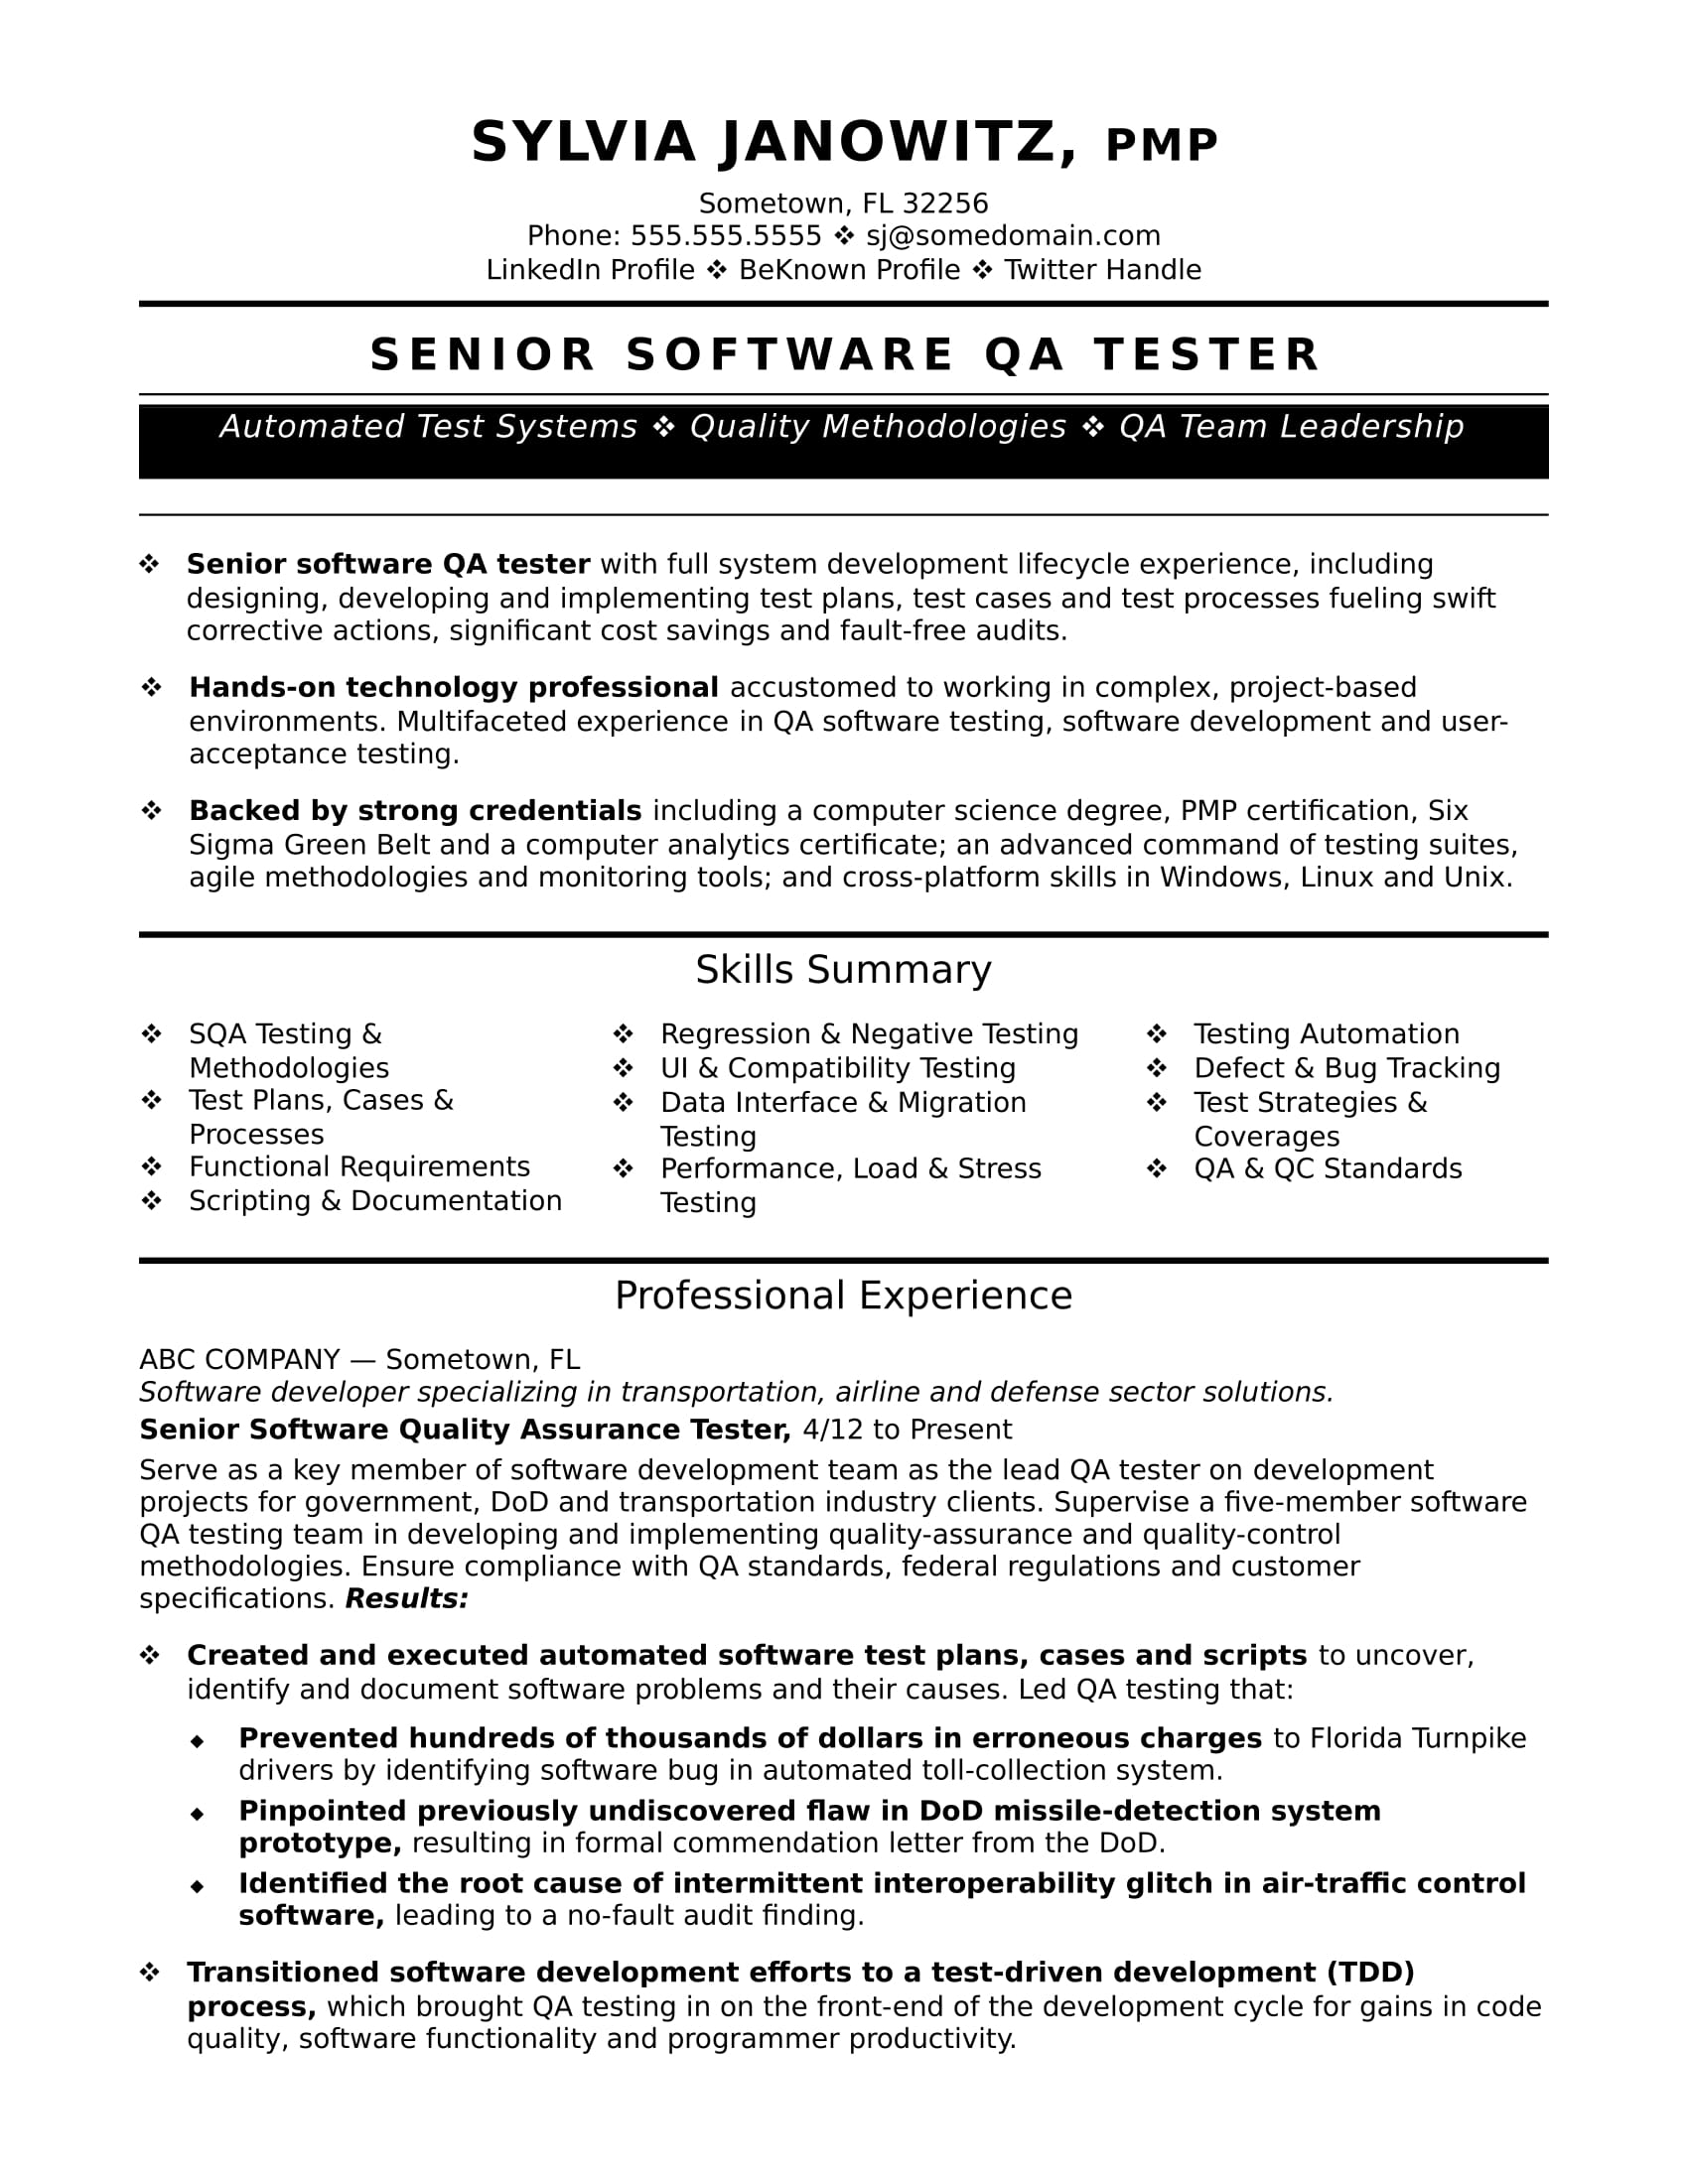 experienced qa software tester resume sample monster quality assurance personal injury Resume Quality Assurance Resume Sample